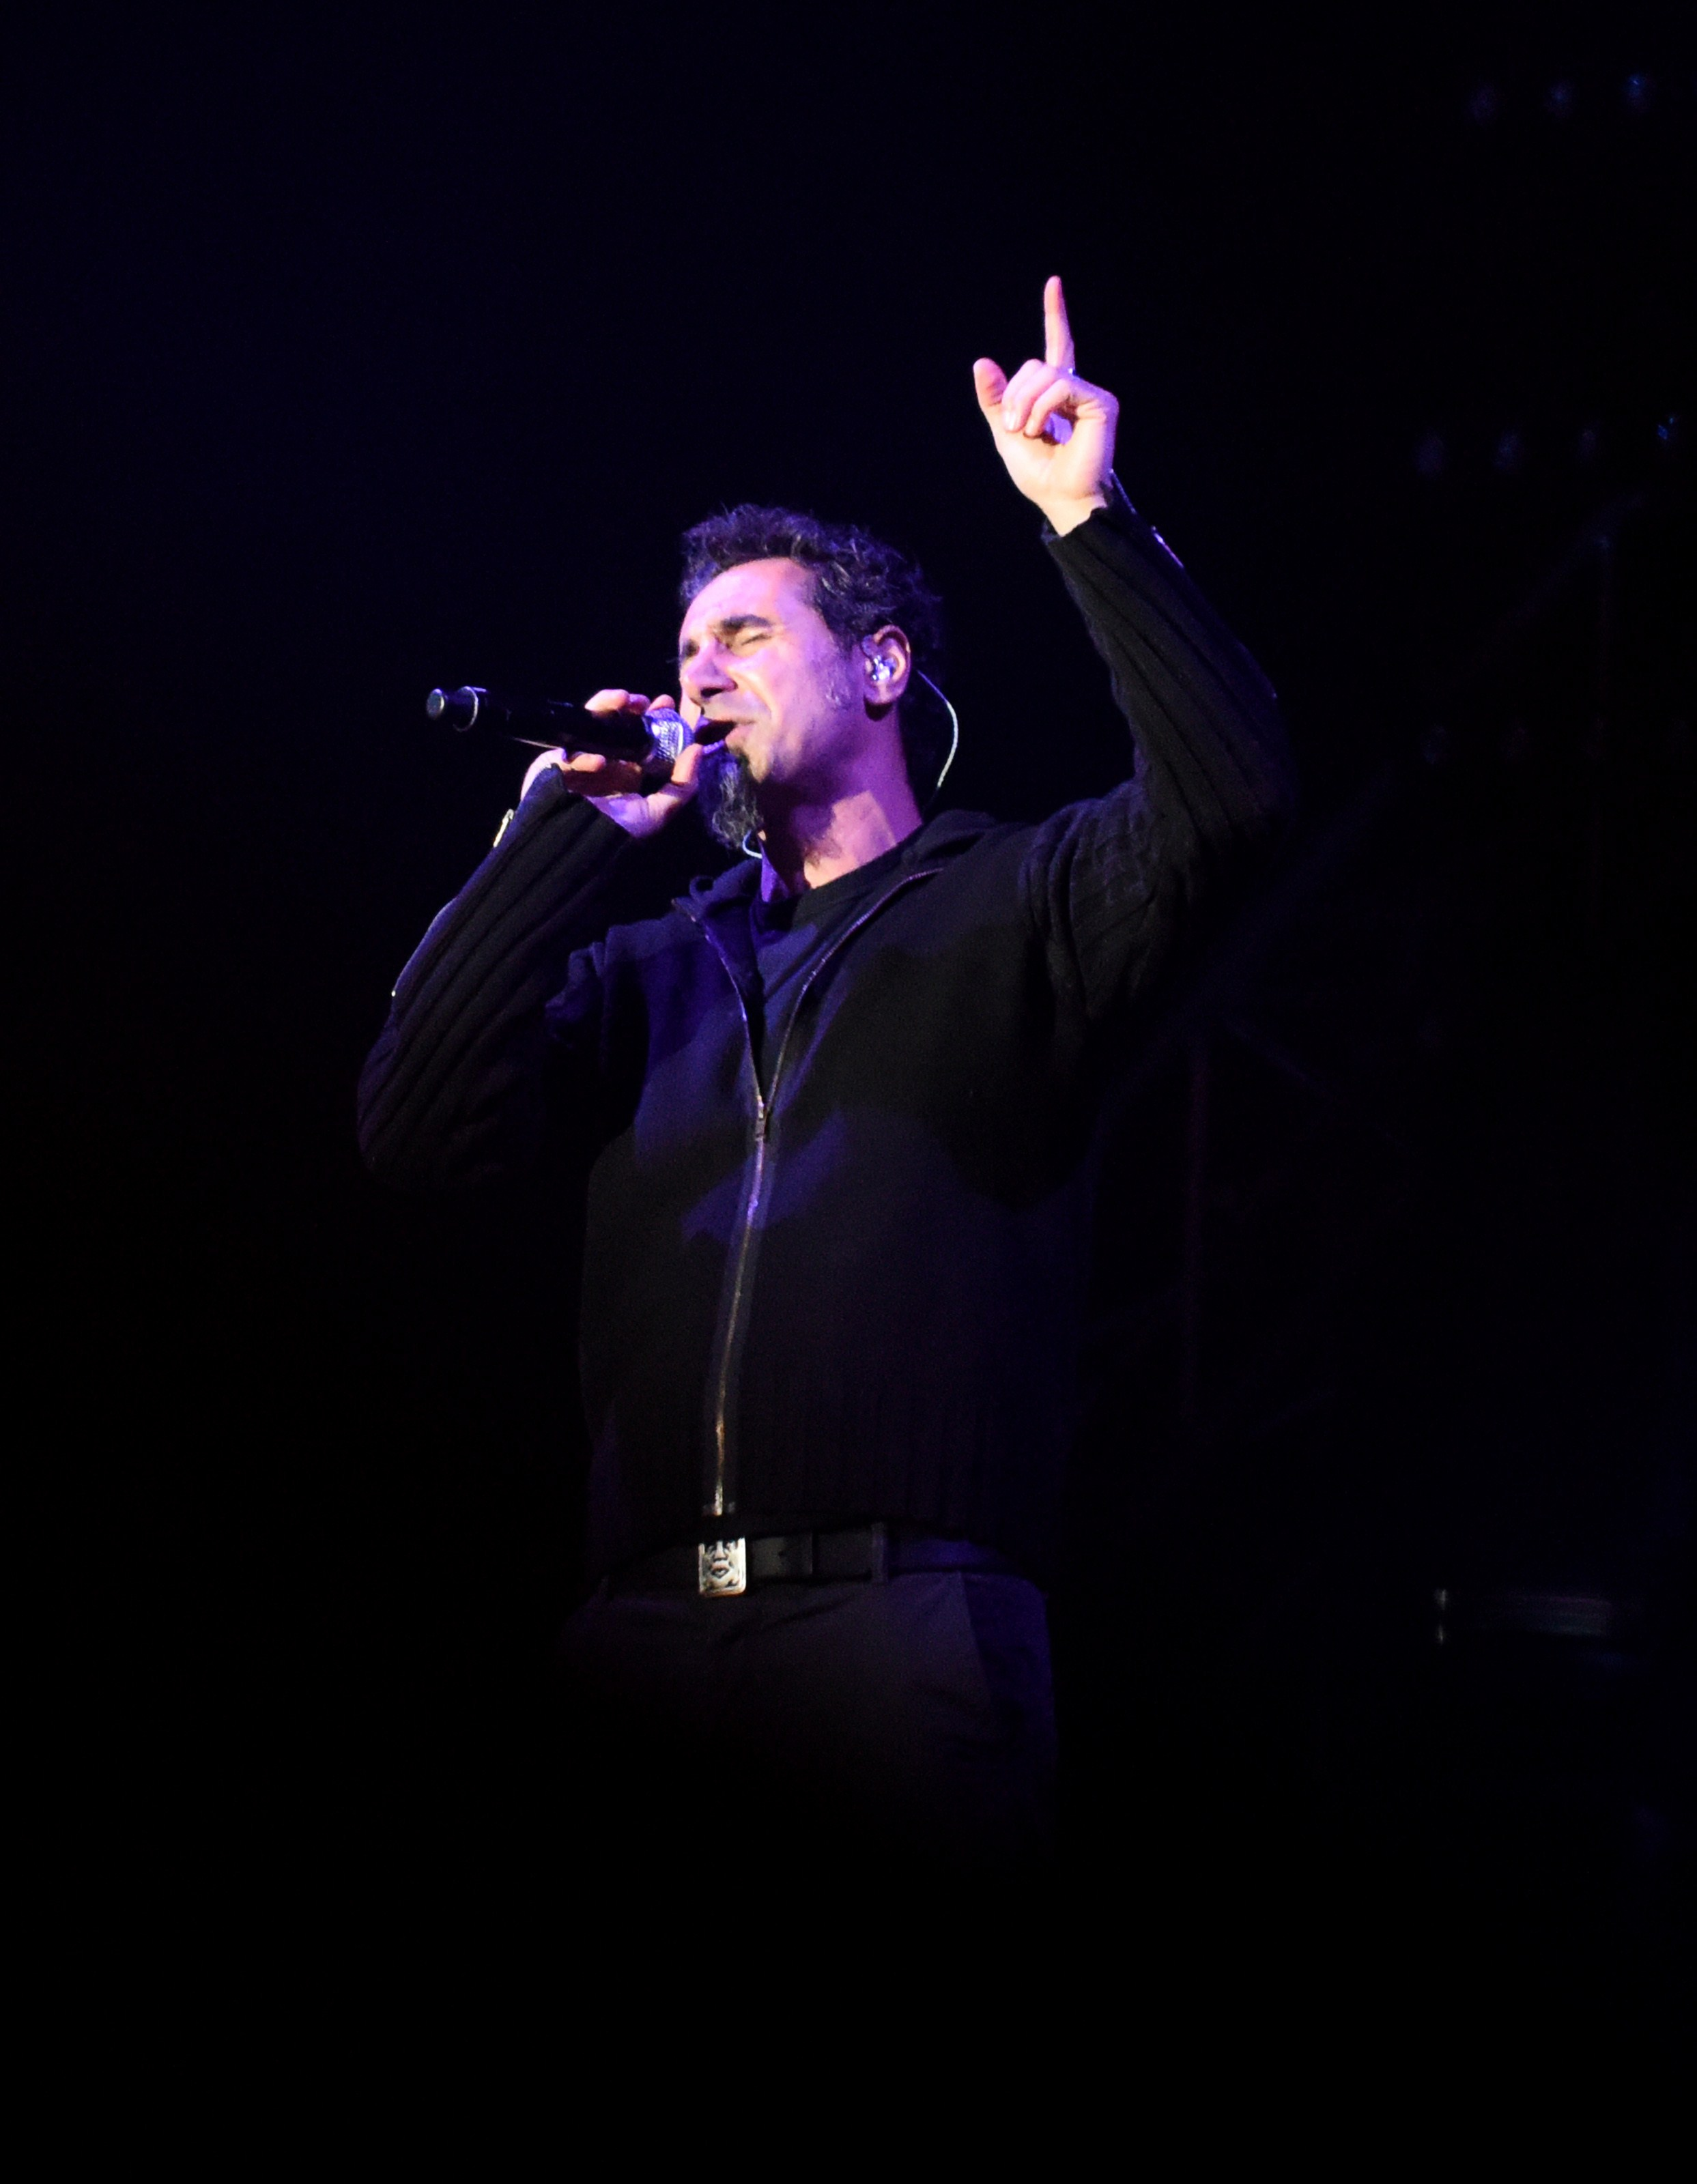 Serj Tankian of the hard rock band System of a Down performs at Yerevan's Republic Square on April 23, 2015.